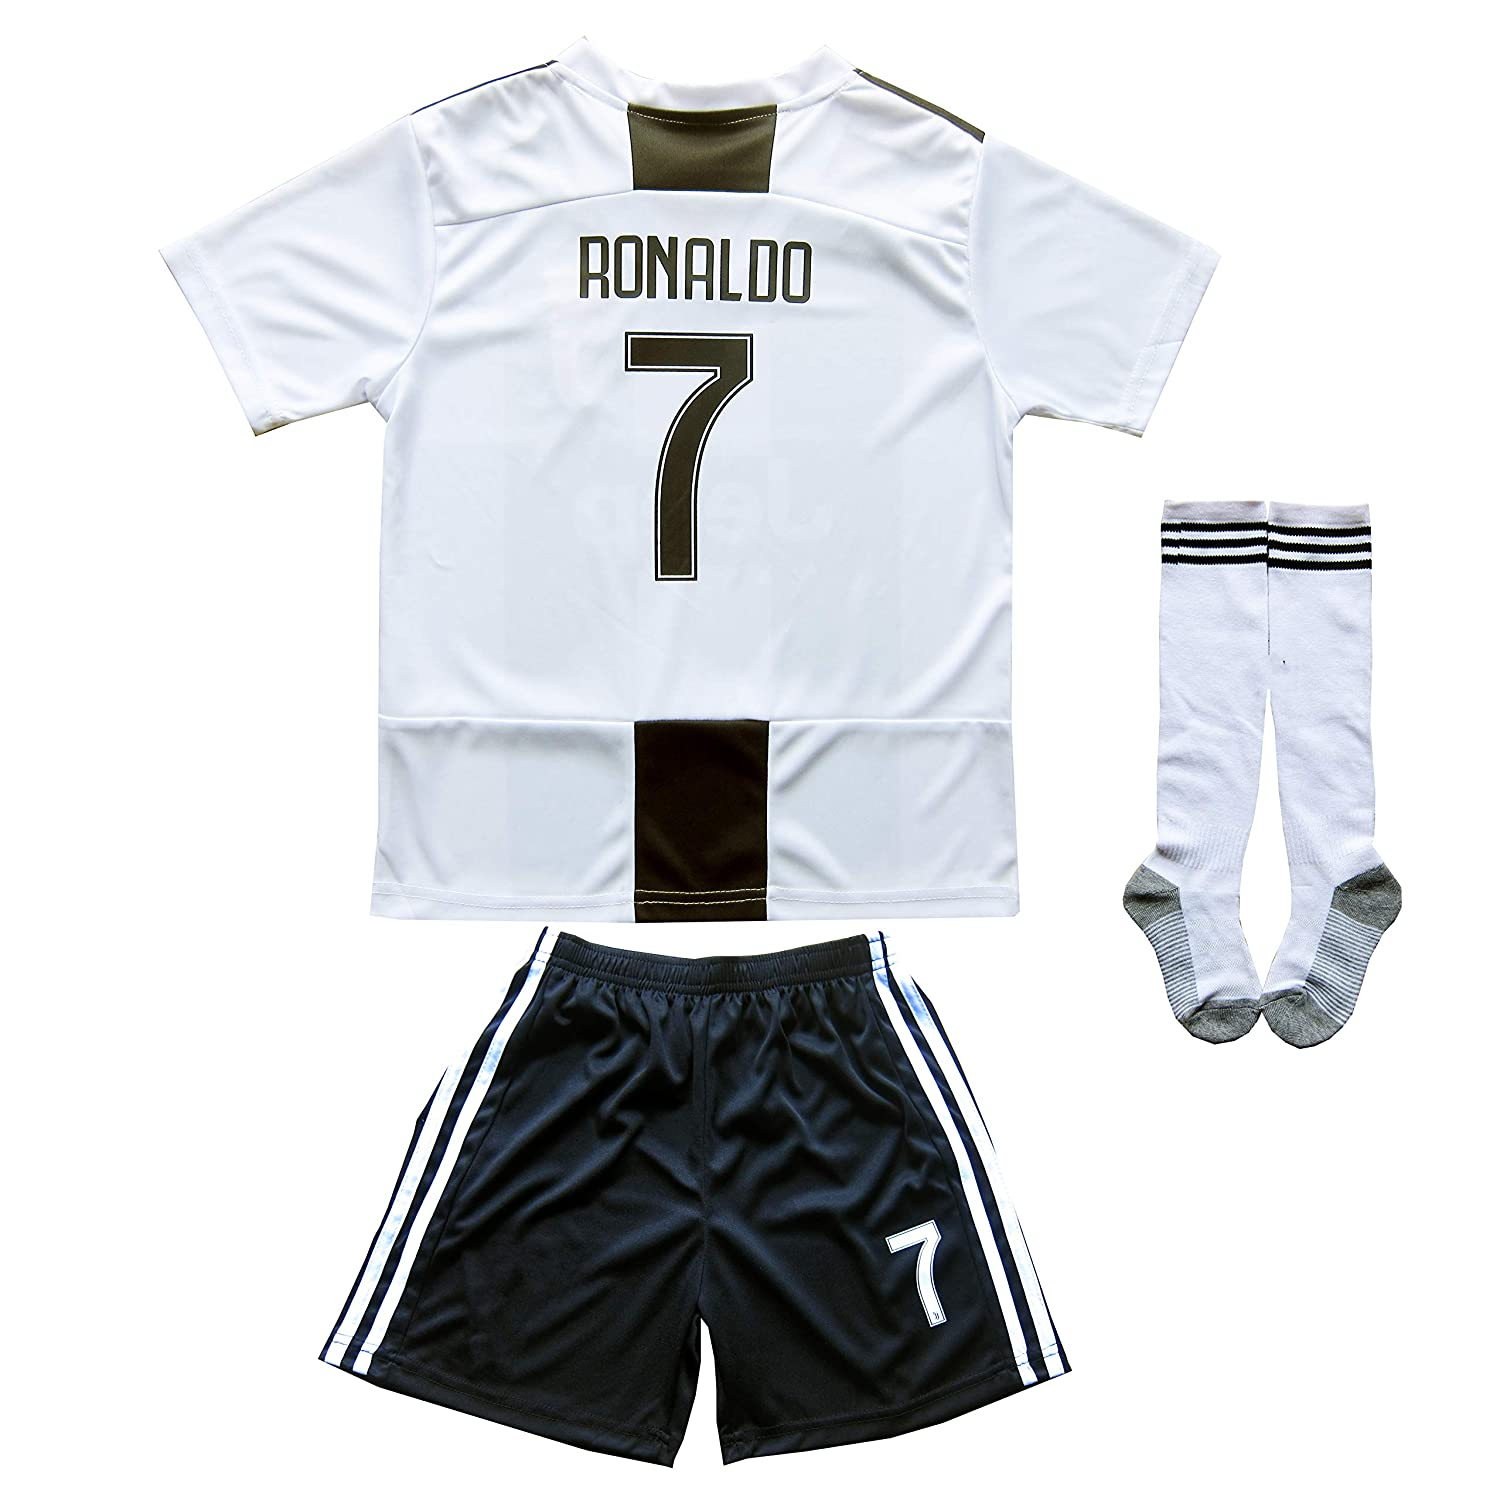 FCRM 2018//2019 New #7 Cristiano Ronaldo Kids Home Soccer Jersey /& Shorts Youth Sizes